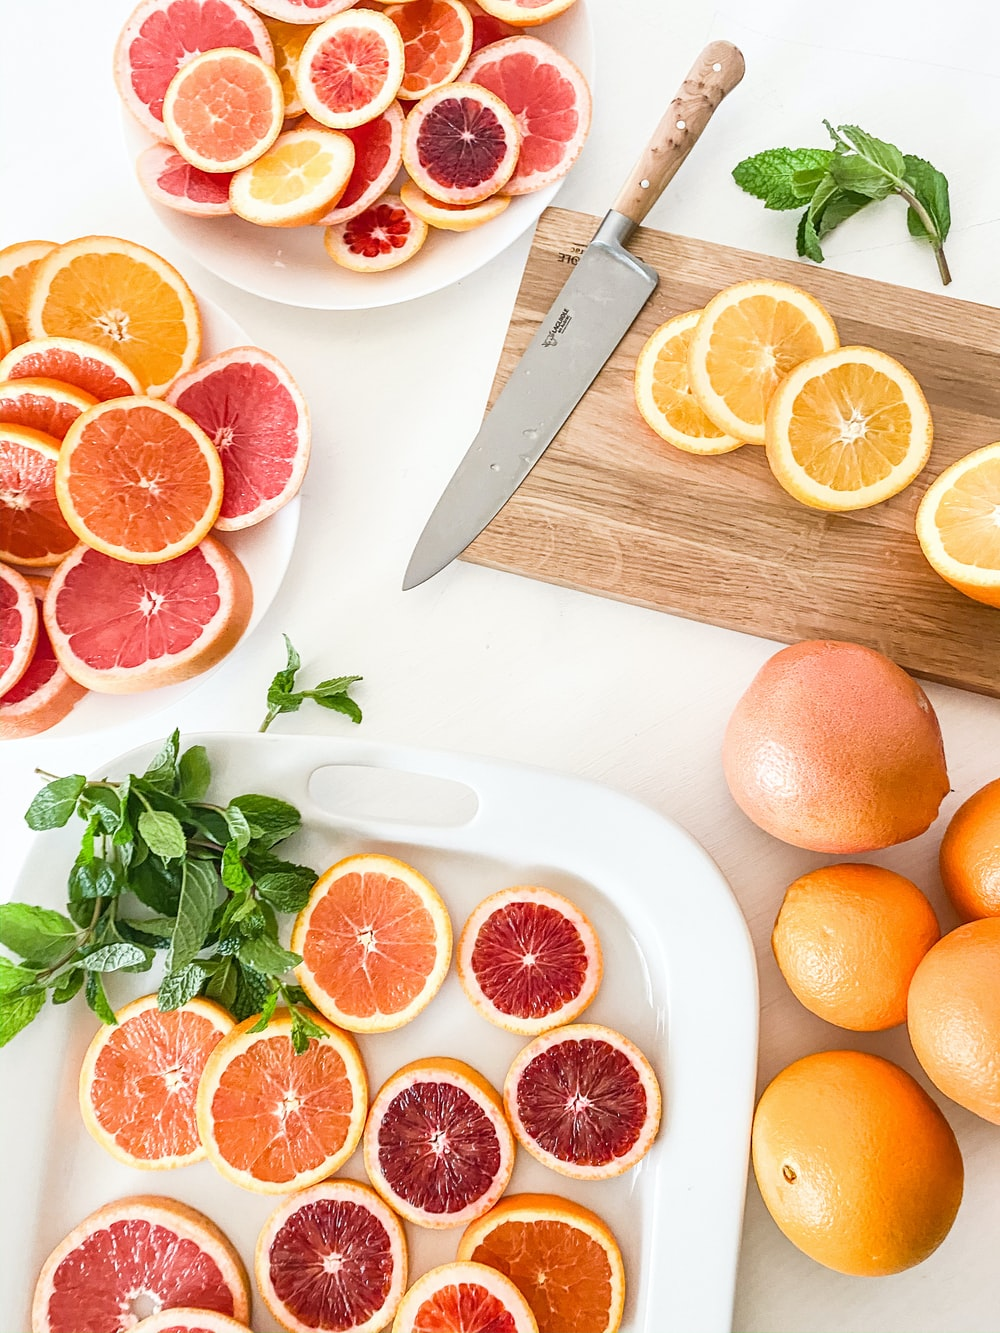 slices of grapefruits